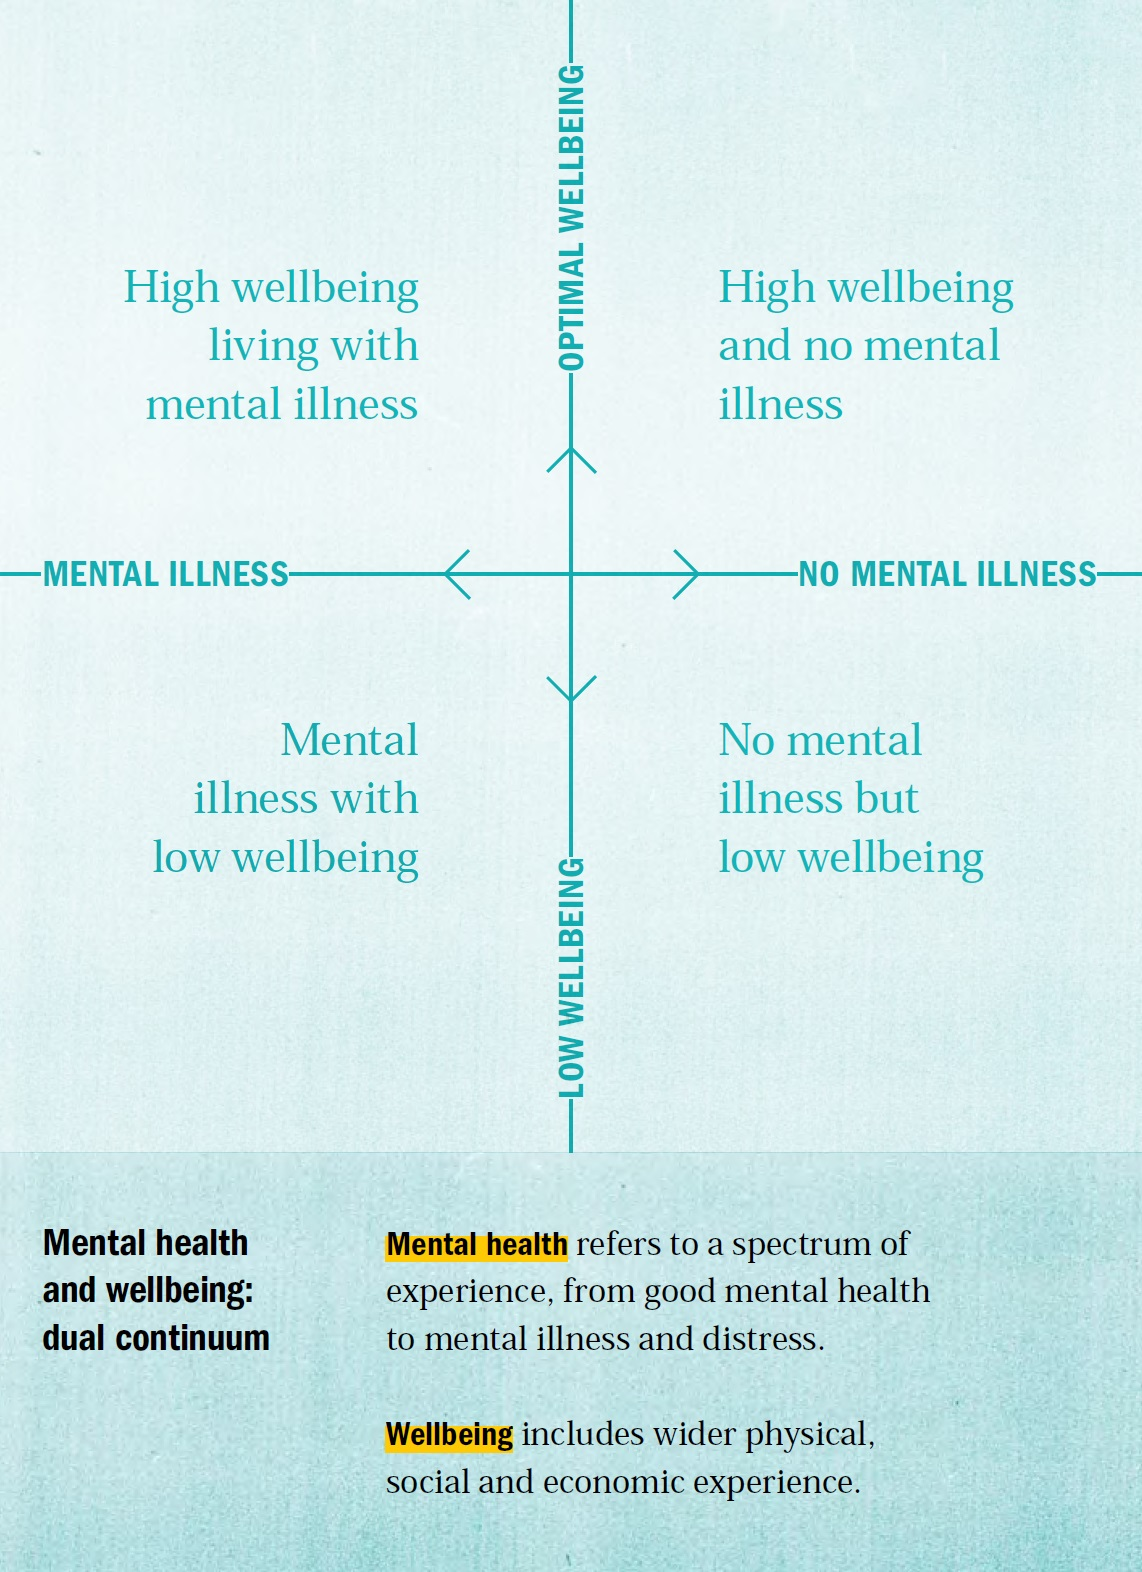 Mental health and wellbeing: a dual continuum